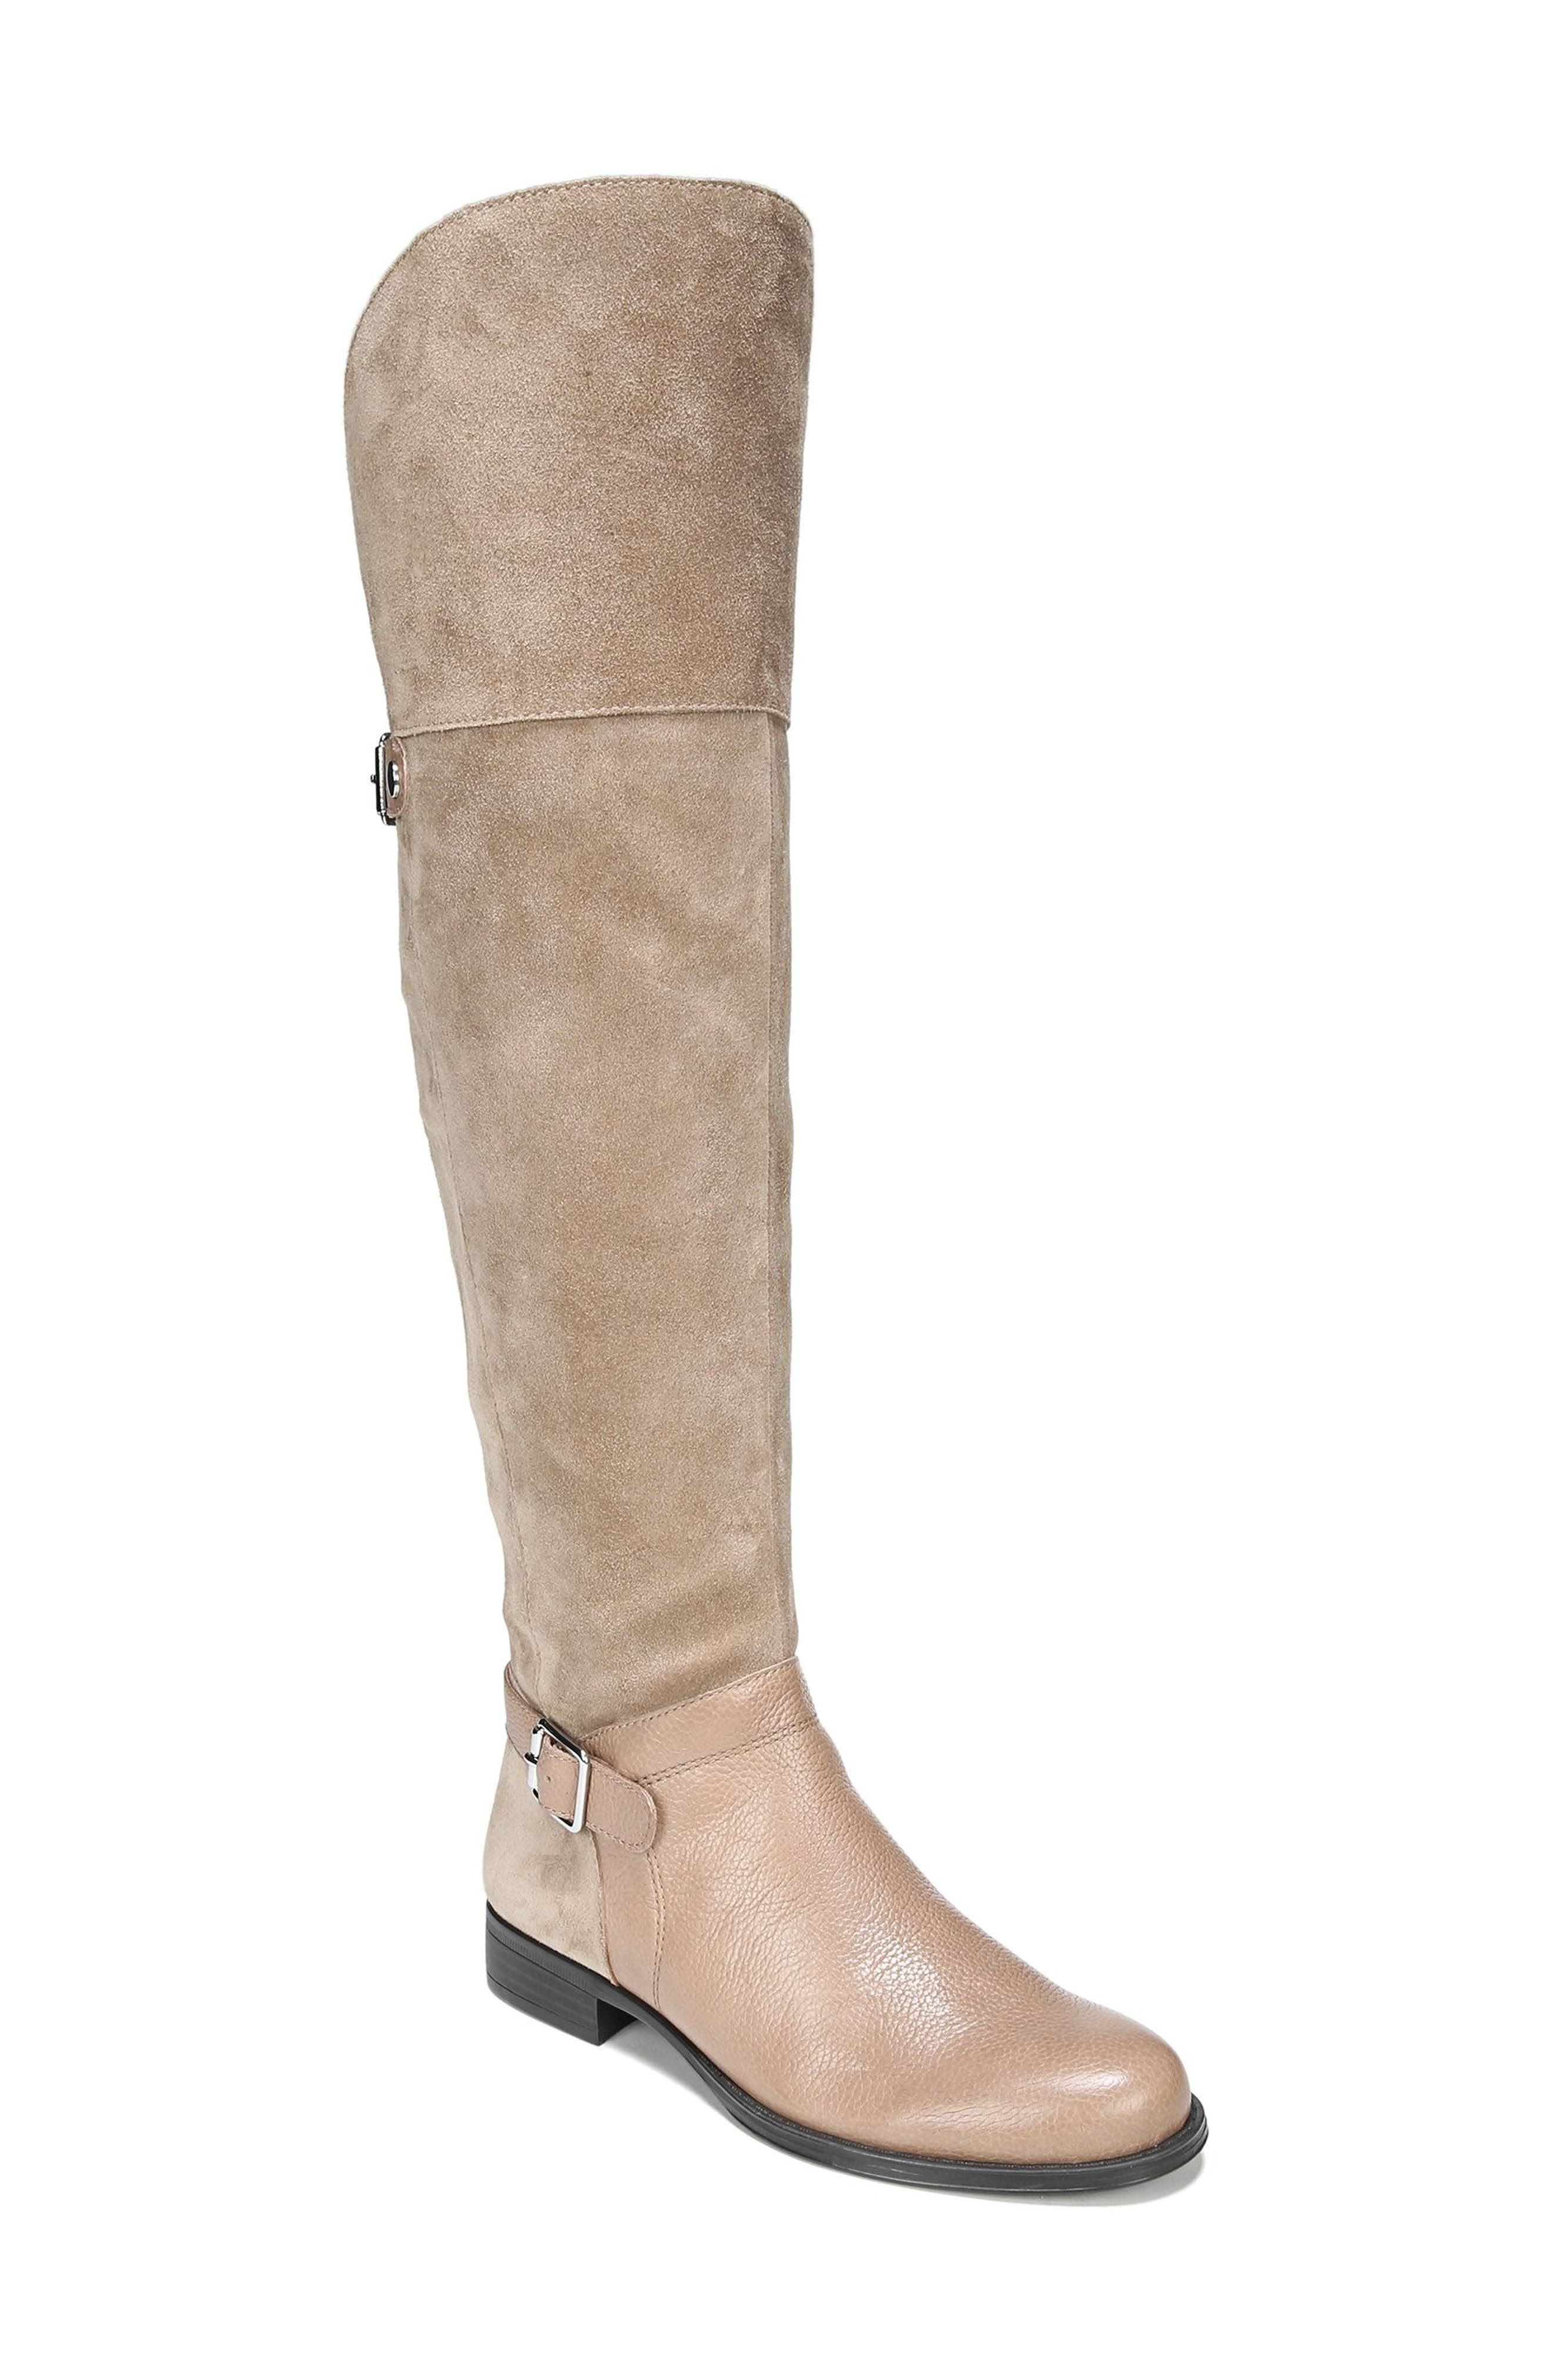 Main Image - Naturalizer January Over the Knee High Boot (Women)